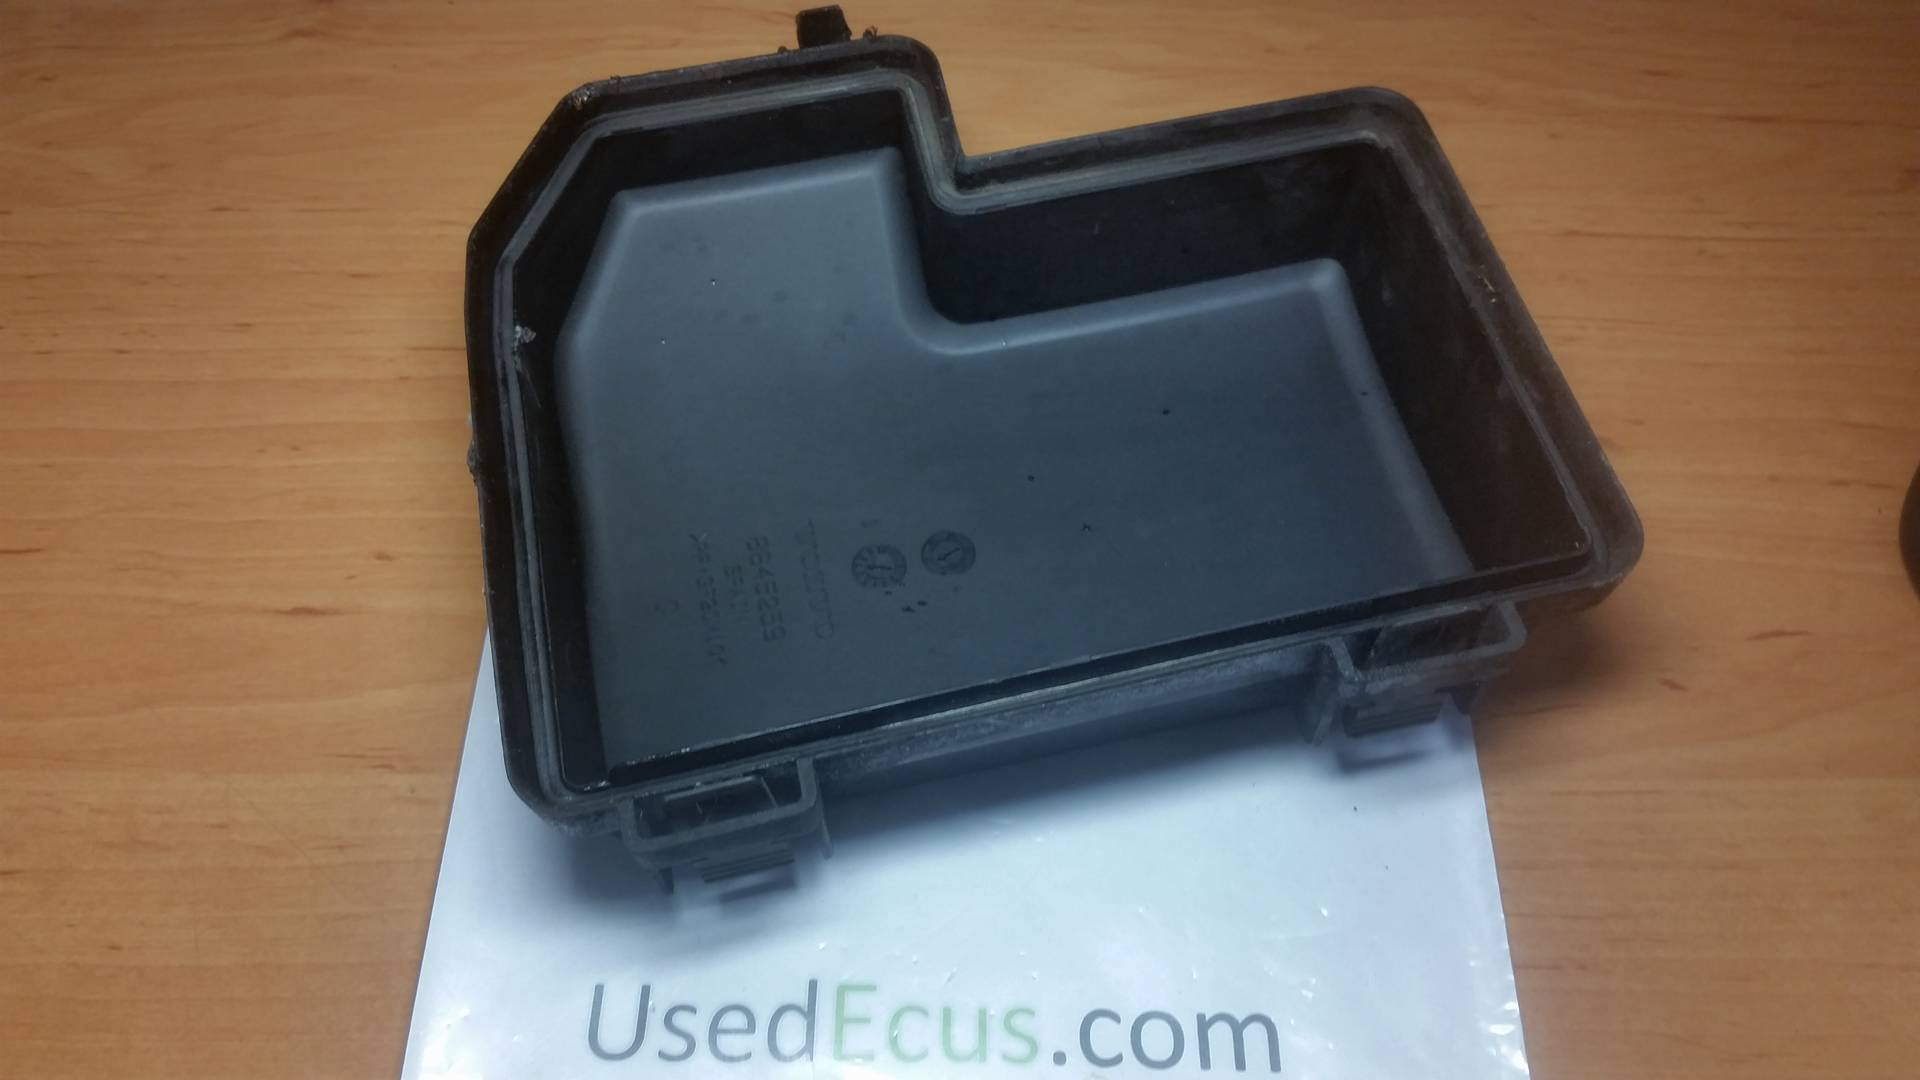 Volvo Xc90 S60 V70 Fuse Box Lid Cover 8645259 Article